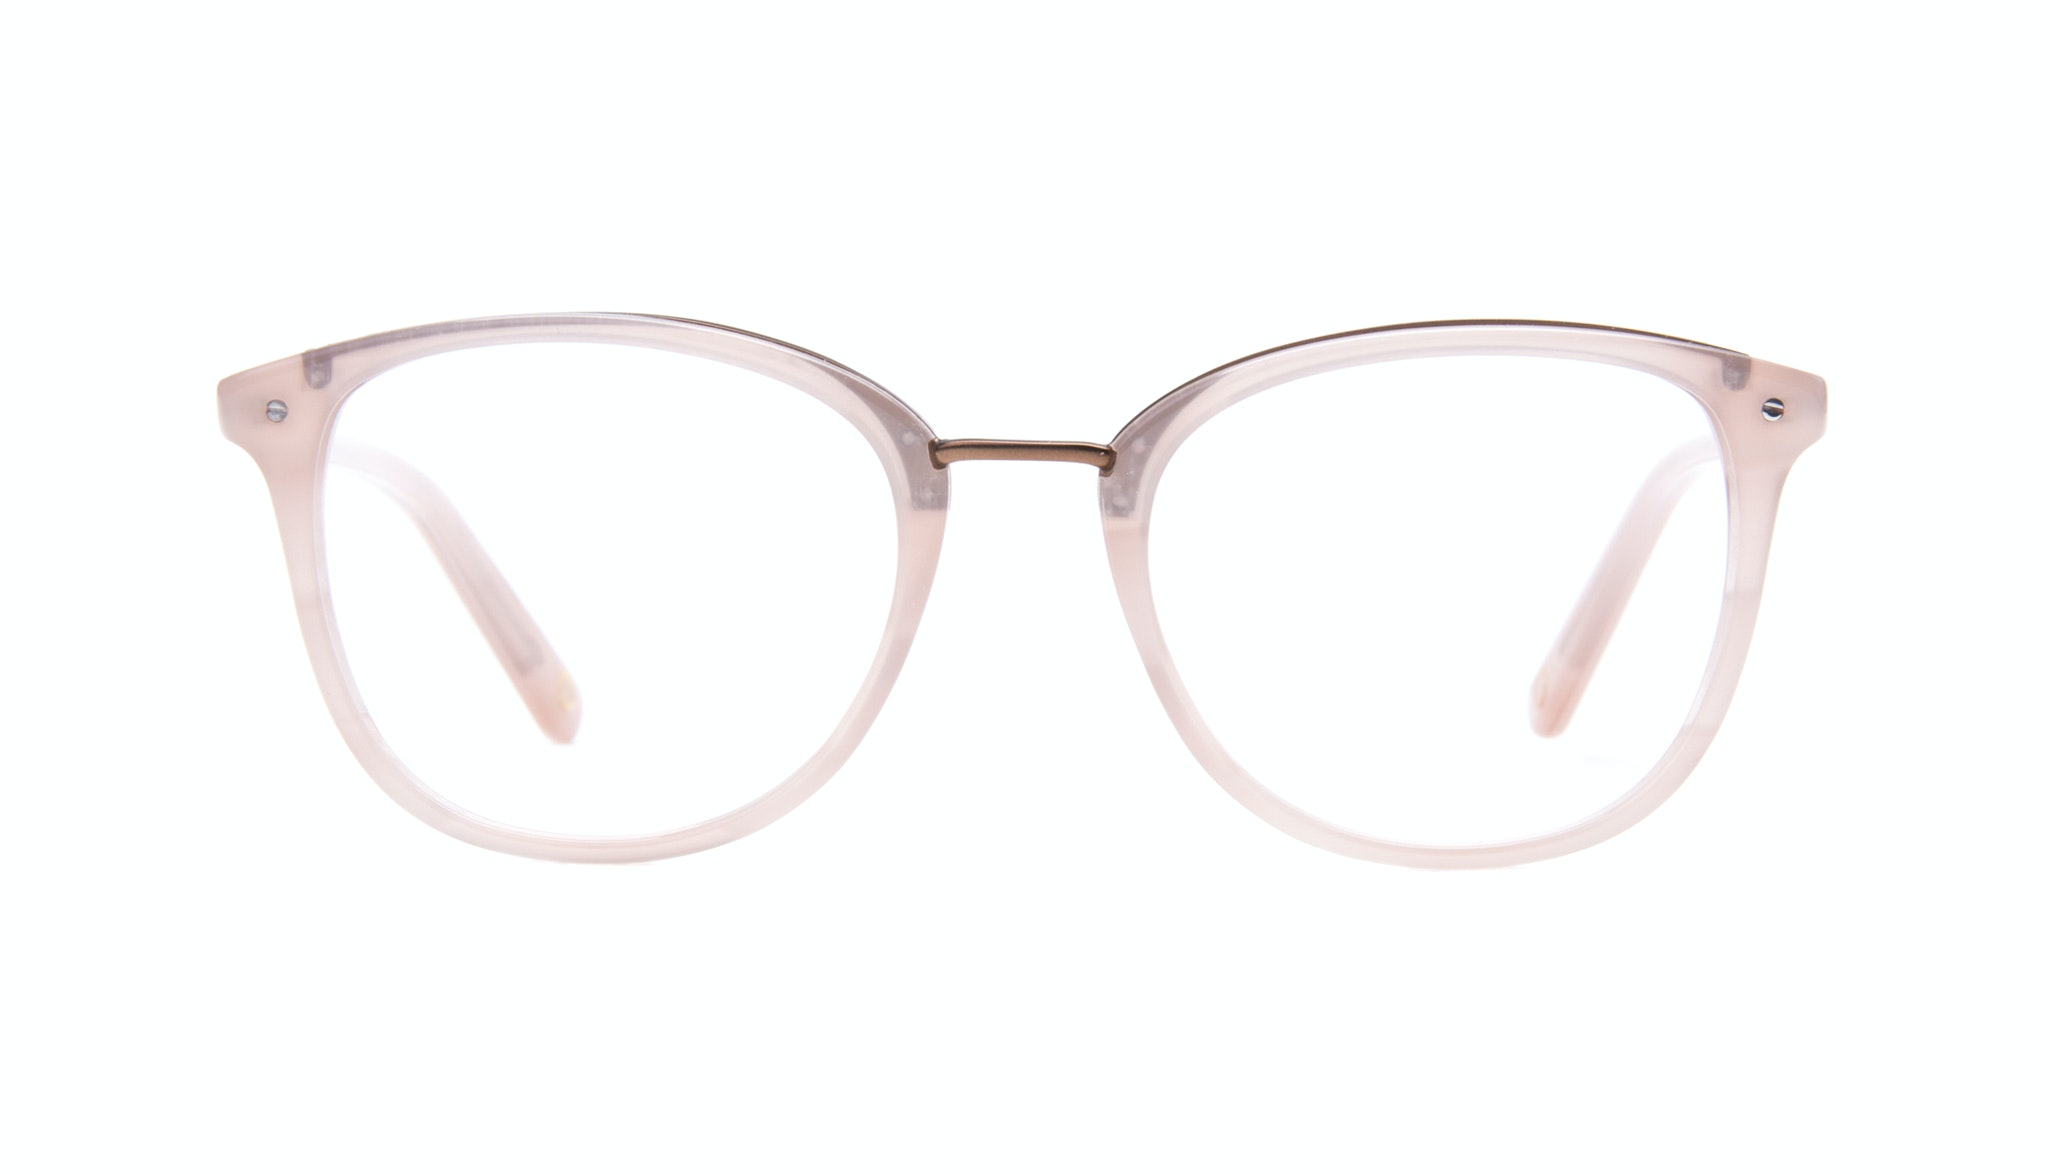 Affordable Fashion Glasses Square Round Eyeglasses Women Bella Blush Front